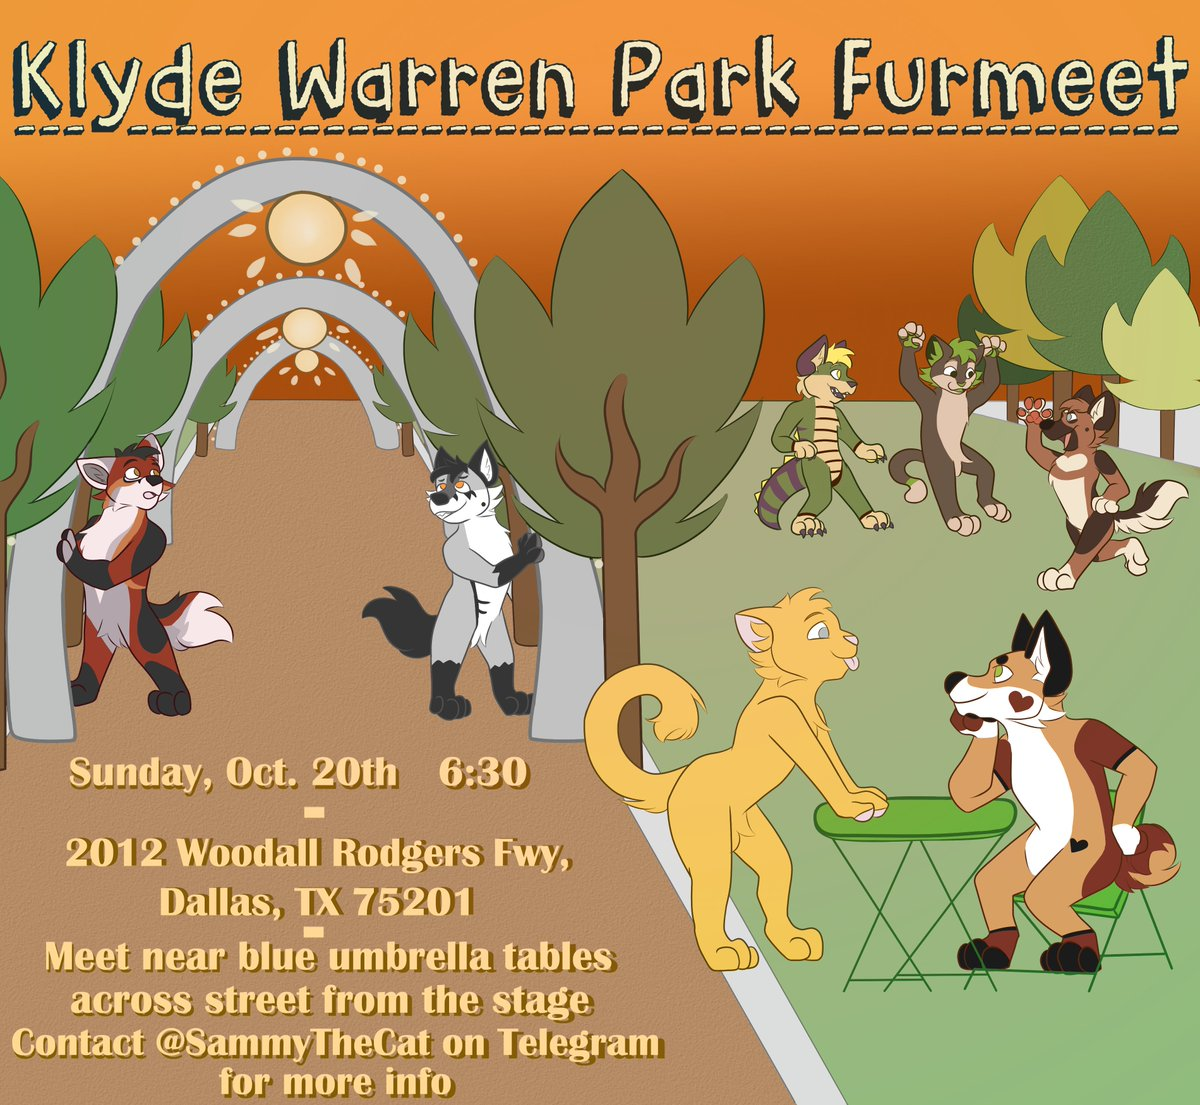 Get excited for this month's Klyde Warren meet! Food trucks, candy, great scenery, and fun with friends! The temperature will also be perfect for fursuiting!   Come join us for a night of fun this Sunday! <br>http://pic.twitter.com/CPsITRHNMq